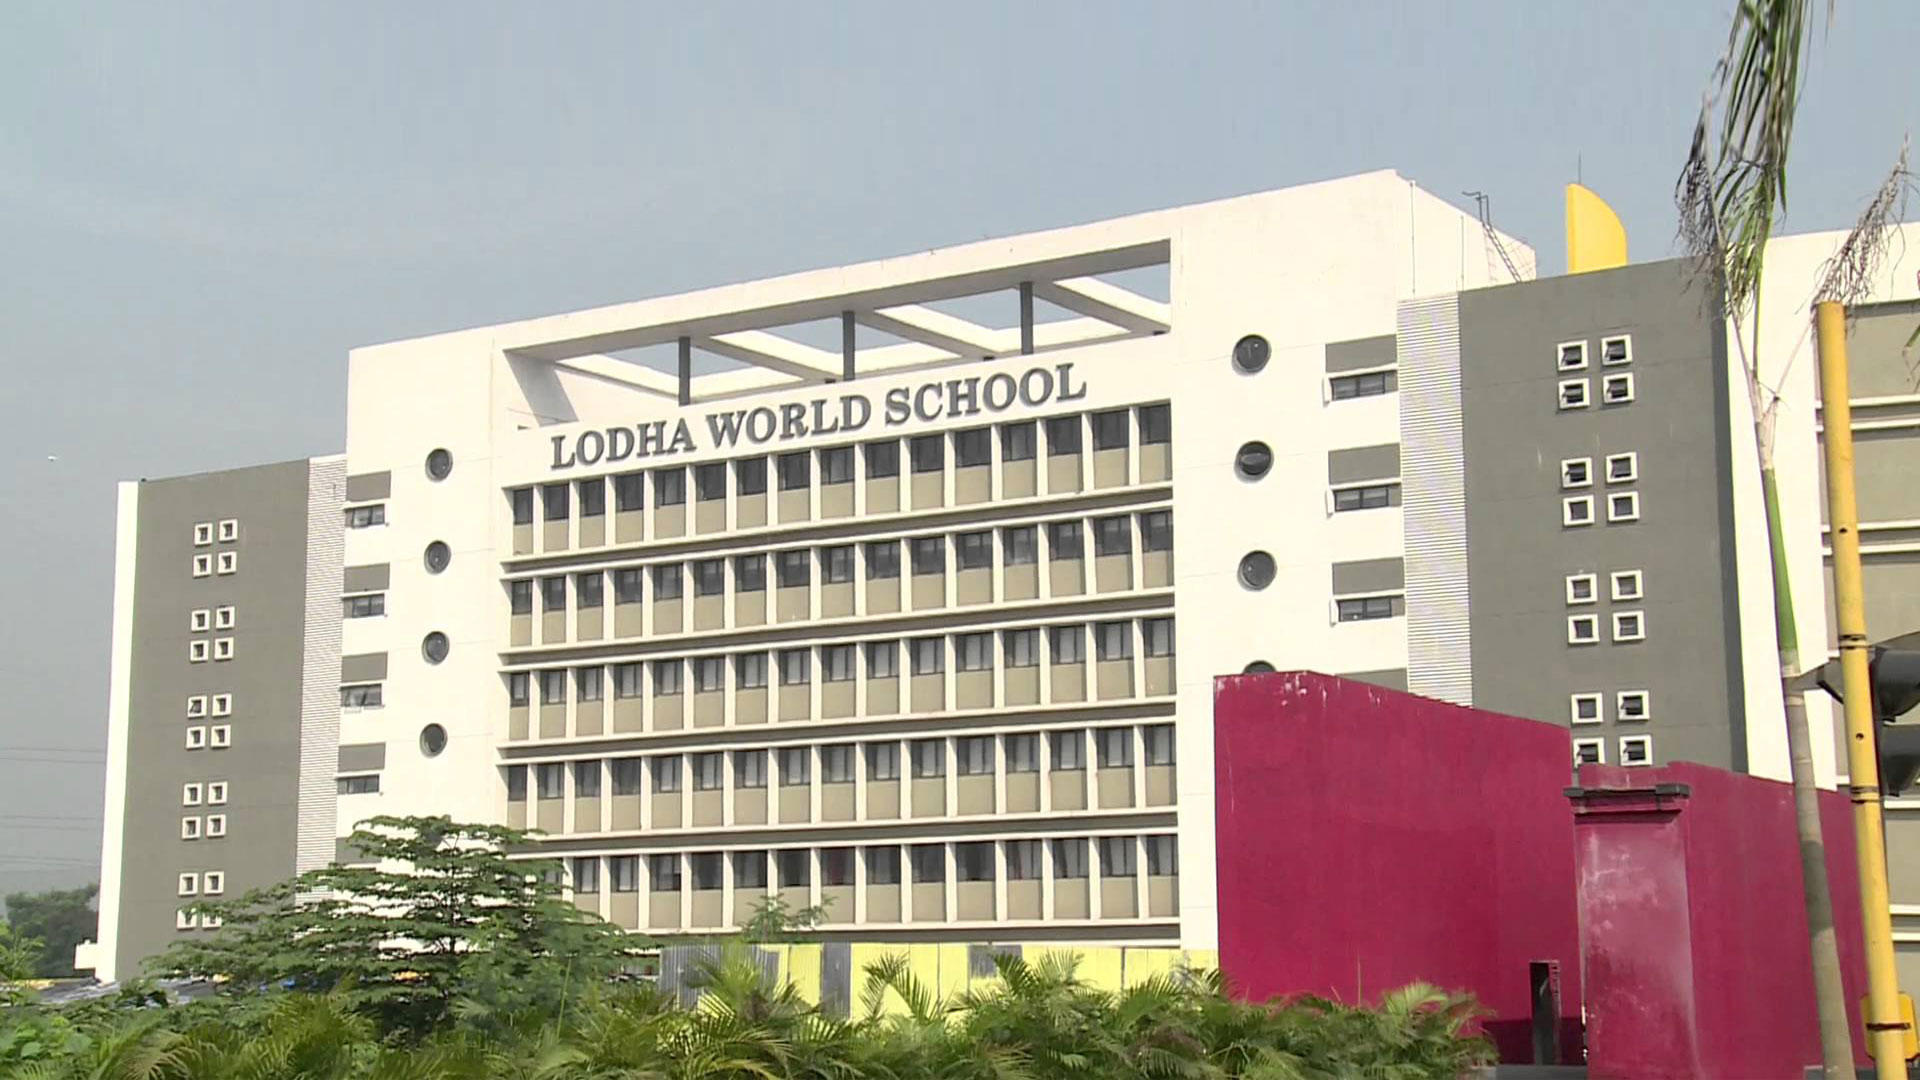 lodha world school in palava